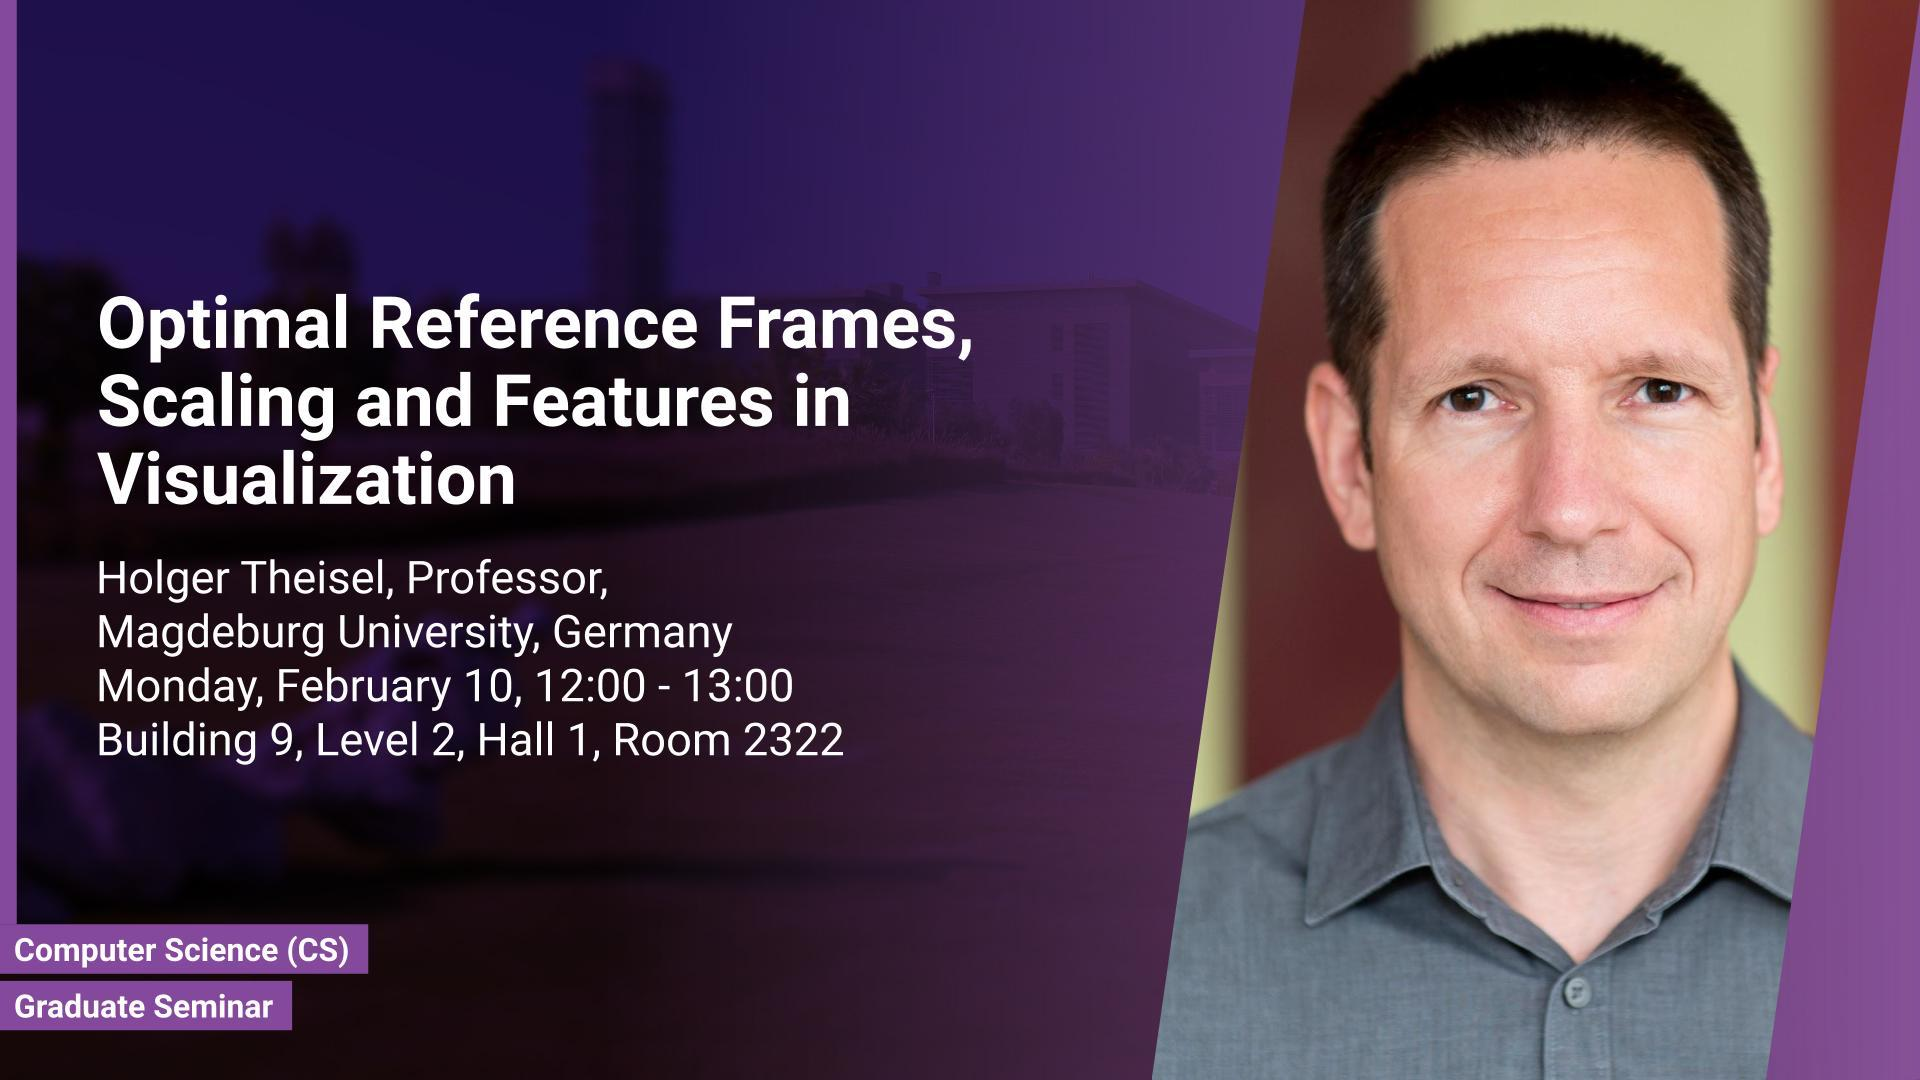 KAUST CEMSE CS Graduate Seminar Holger Theisel Optimal Reference Frames Scaling and Features in Visualization